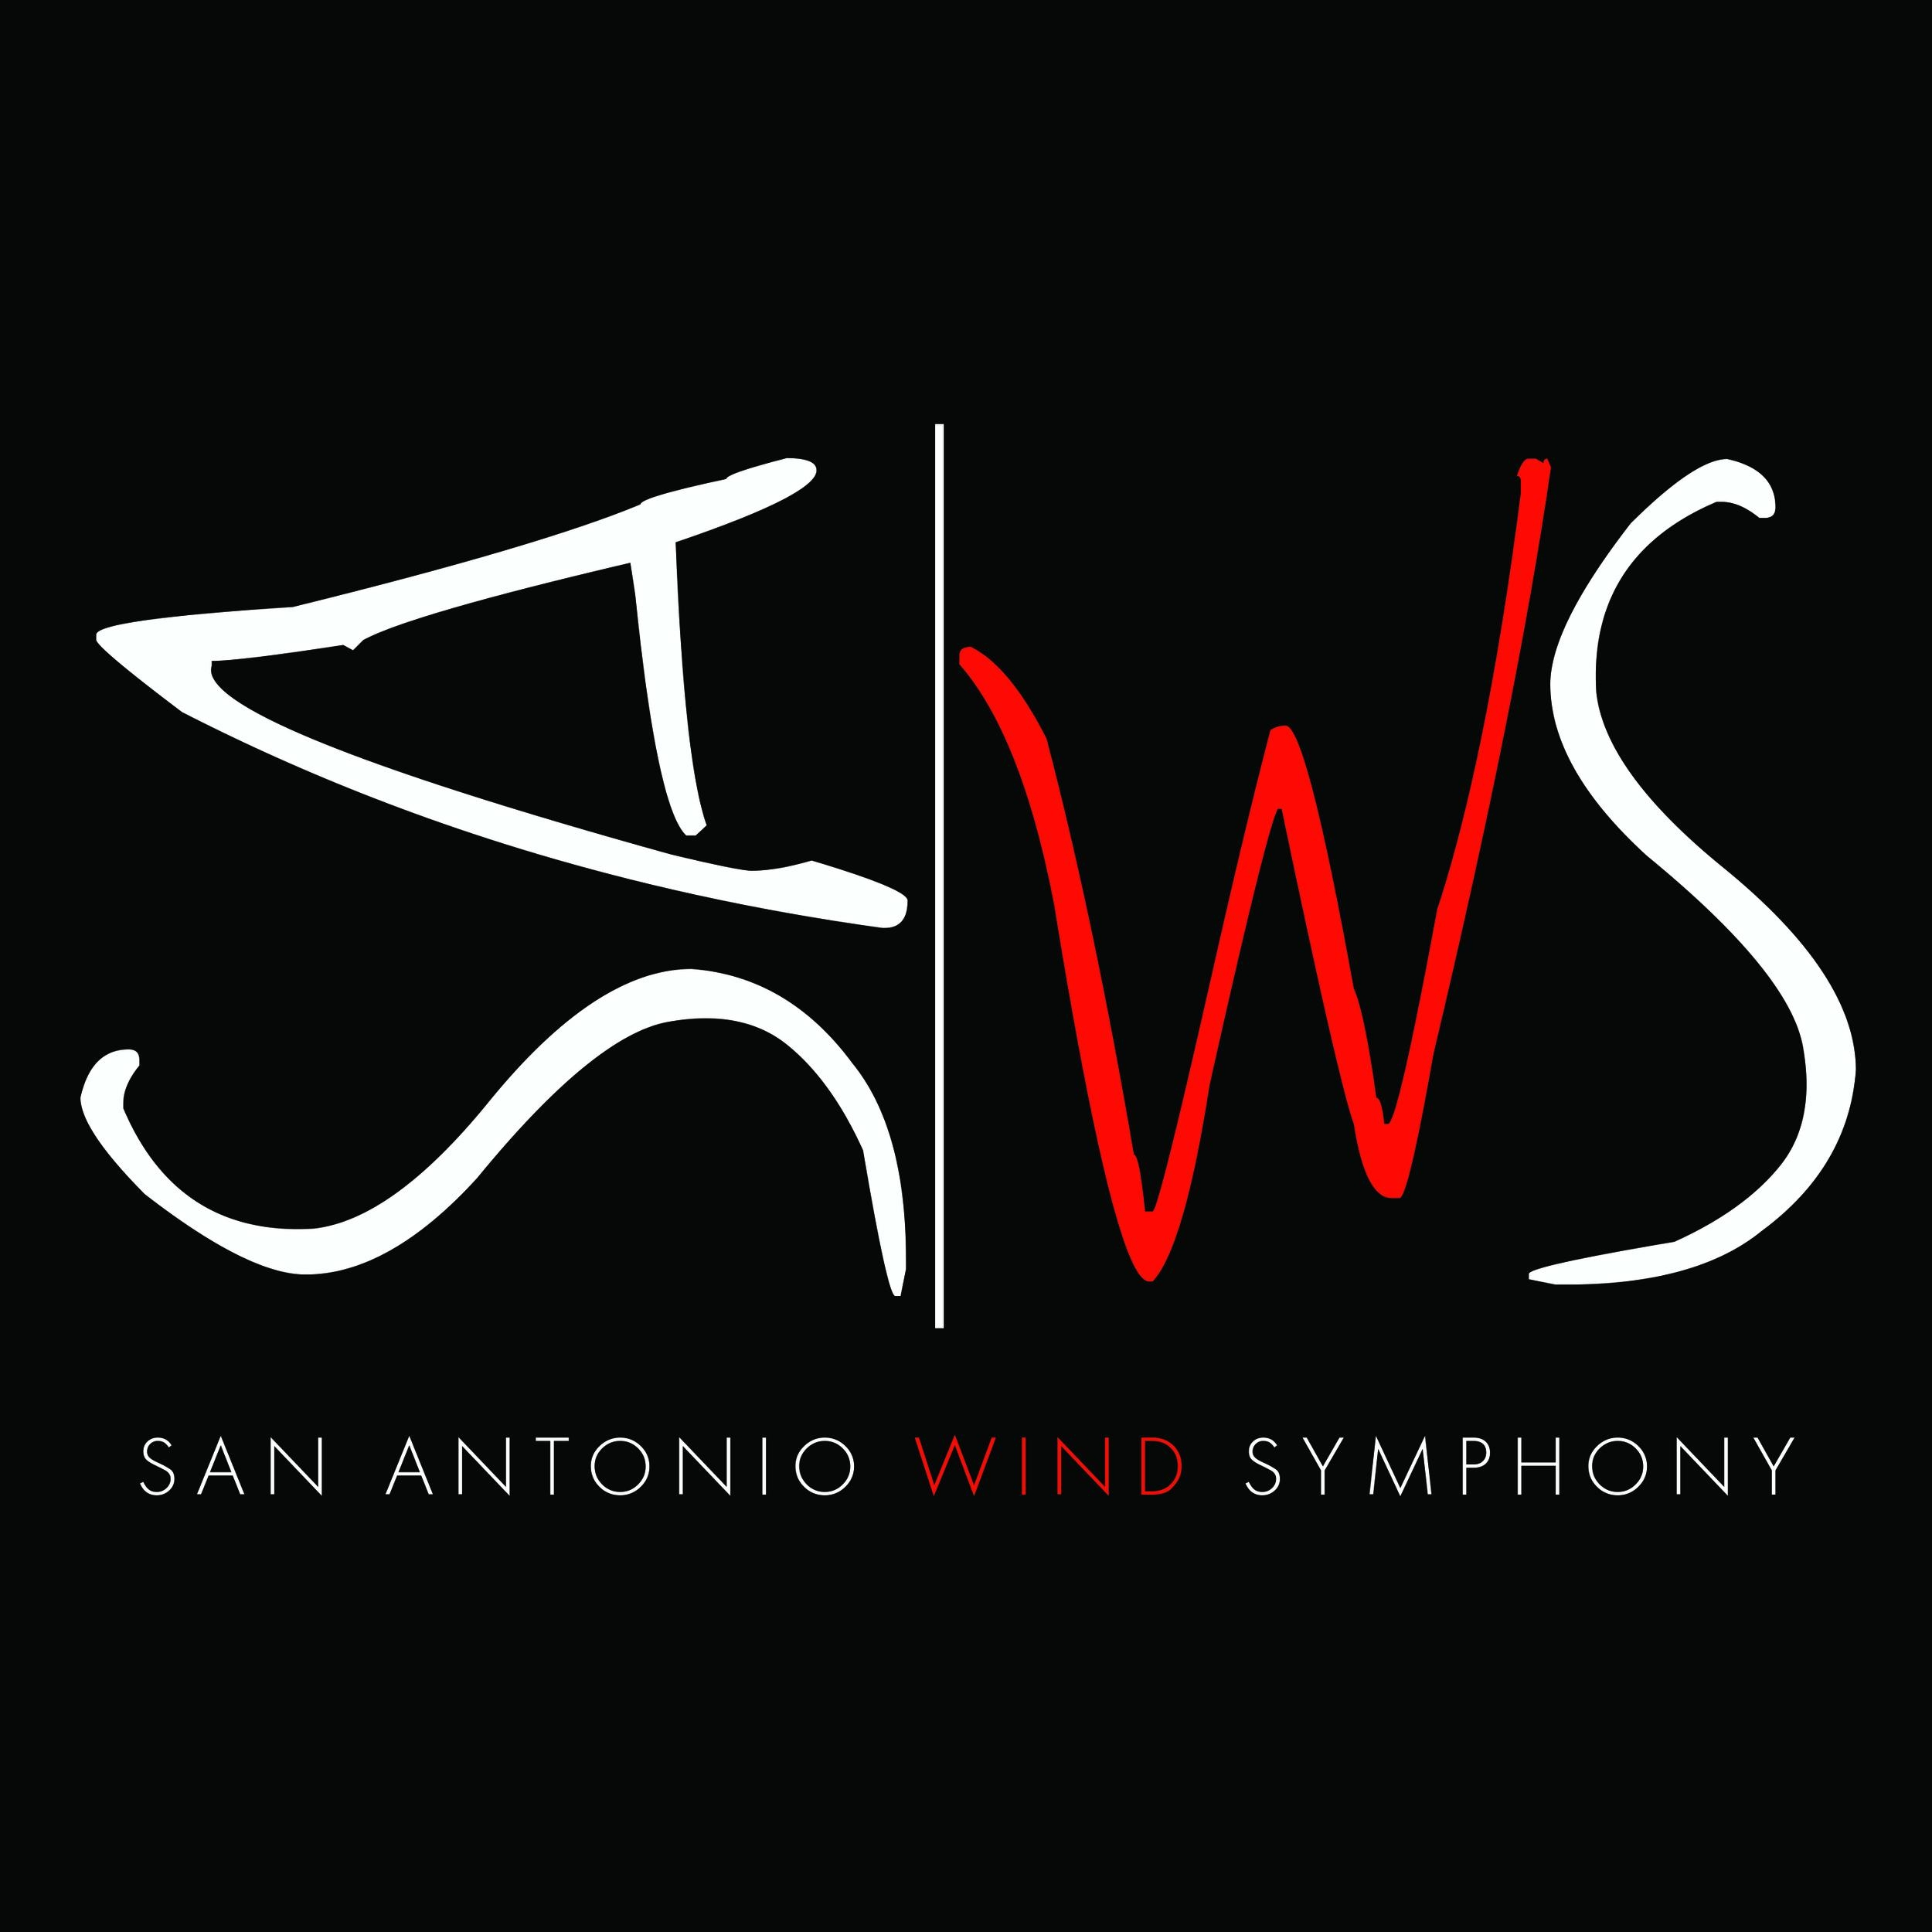 As we enter our sixteenth Season, the  San Antonio Wind Symphony  would like to thank everyone who helps us in our continuing our mission of fostering music education for local students!  In celebration of the  300th Anniversary of San Antonio , each concert will feature the diverse musical traditions from all over the world that have influenced life in San Antonio and the people who make this place so special!  We would like to express our sincere gratitude to our supporters and our sponsors:   The San Antonio Tricentennial Commission    The University of Texas at San Antonio Department of Music    The UTSA Percussion Ensemble , Sherry Rubins, Director   Alfred Frances and Janice Marty Sturchio and the Sturchio Family    RBC Music Company, Inc.    Padgett Stratemann and Company    The San Antonio Gypsy Motorcycle Club    Arpeggio Music Academy    Alamo Heights HS Band , David Stephenson, Director   Stevens HS Band , Robert Rubio, Director   Southwest HS Band , Richard Flores, Director   Smithson Valley HS Band , Matt Boening, Dain Vereen, Jeff Yates, Sam Woodfield, Directors